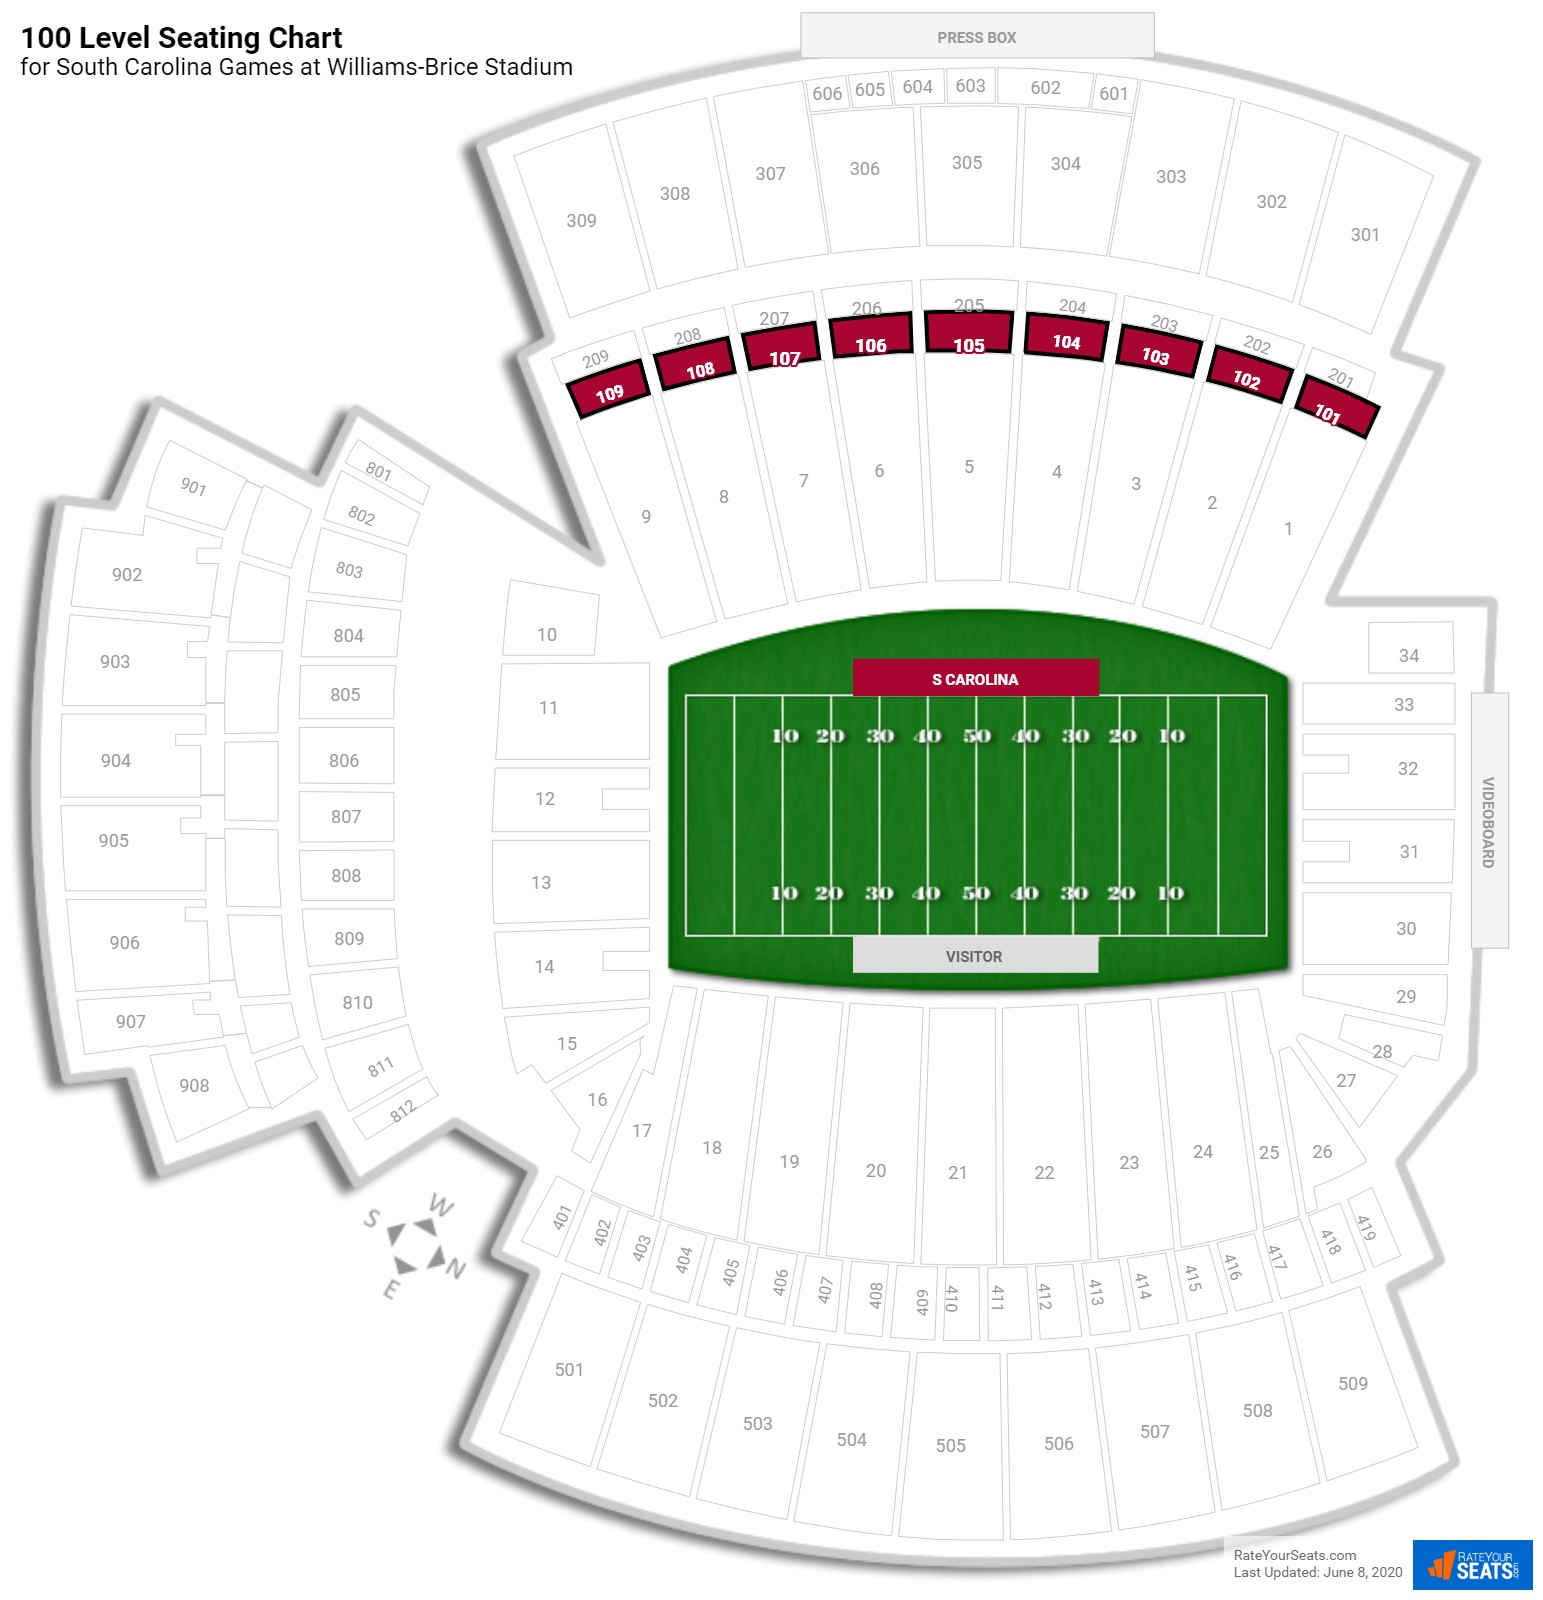 Williams-Brice Stadium 100 Level seating chart